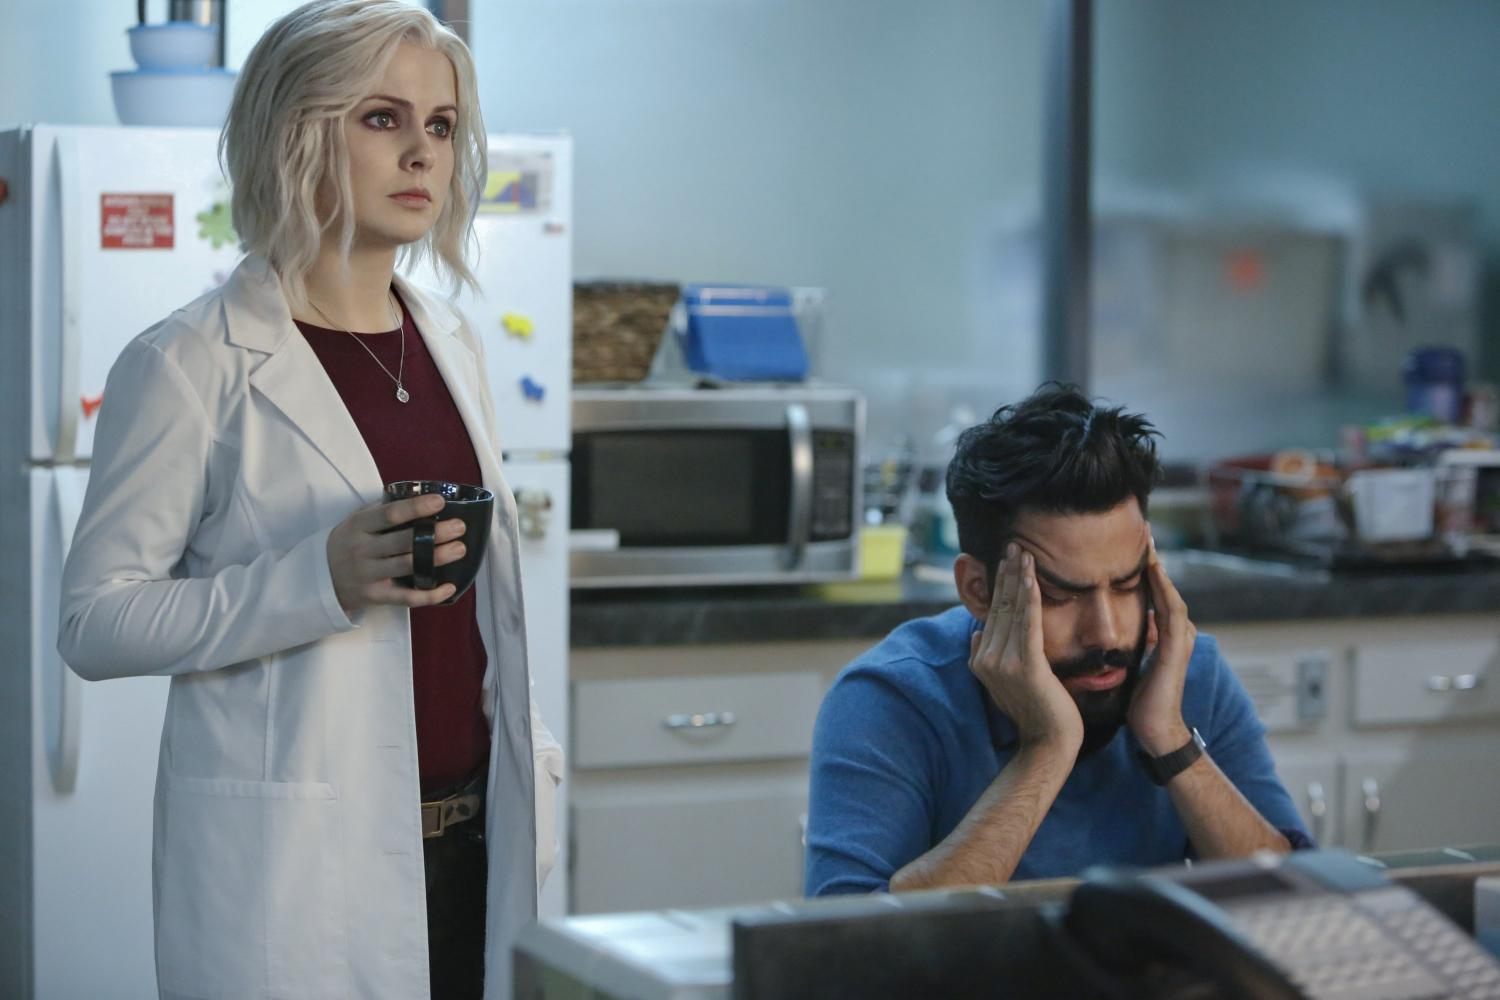 Zombie+Olivia+%27Liv%27+Moore+%28Rose+Mciver%29+working+side+by+side+with+her+exasperated+boss+Ravi+Chakrabarti+%28Rahul+Kohli%29+as+a+medical+examiner+to+help+solve+murders+and+satisfy+her+appetite.